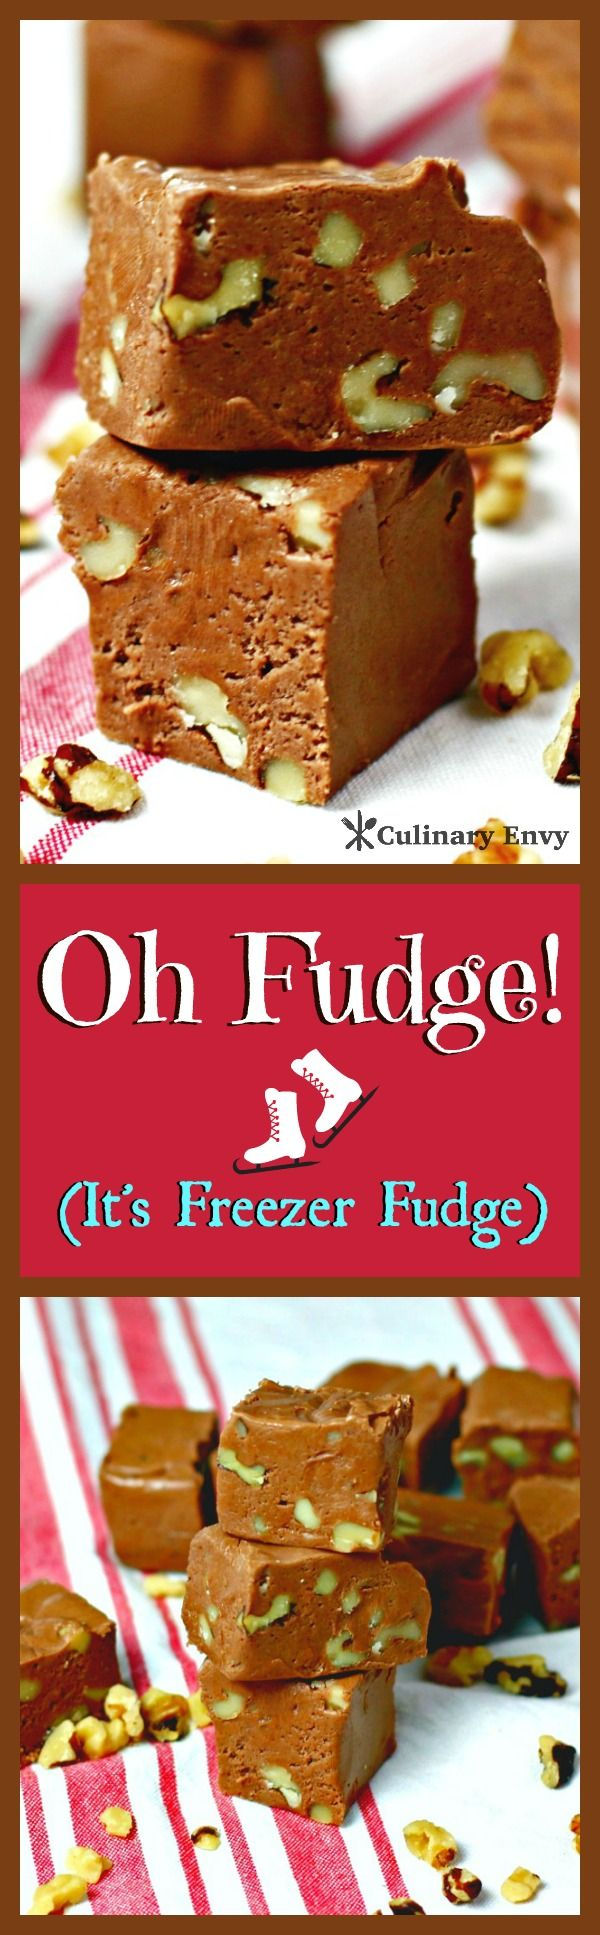 Oh Fudge is decadent, intensely chocolaty and velvety, silky smooth.  This freezer fudge is so creamy and rich; it just melts in your mouth.